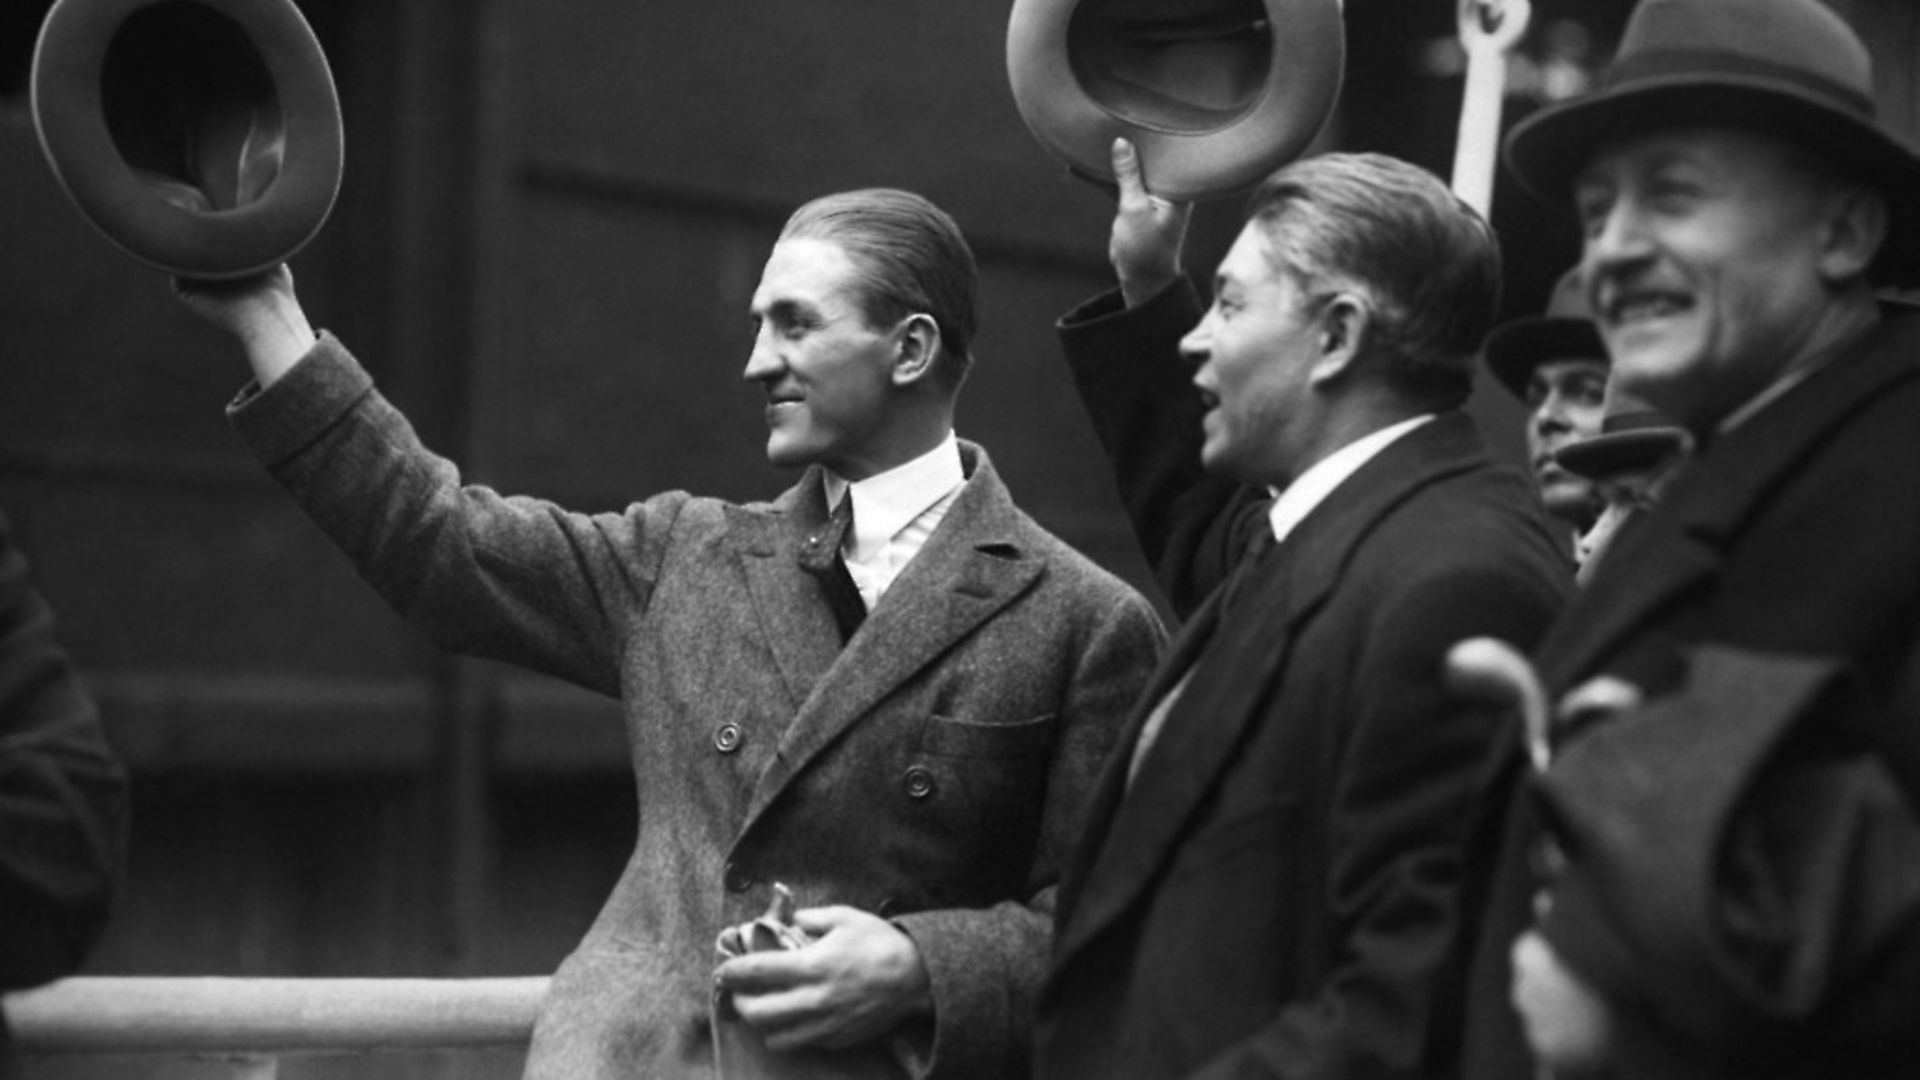 Georges Carpentier and his manager Francis Descamps greeting the crowd on their arrival on the liner 'La Savoie' in the port of New York City, United States. (Photo by KEYSTONE-FRANCE/Gamma-Rapho via Getty Images) - Credit: Gamma-Keystone via Getty Images